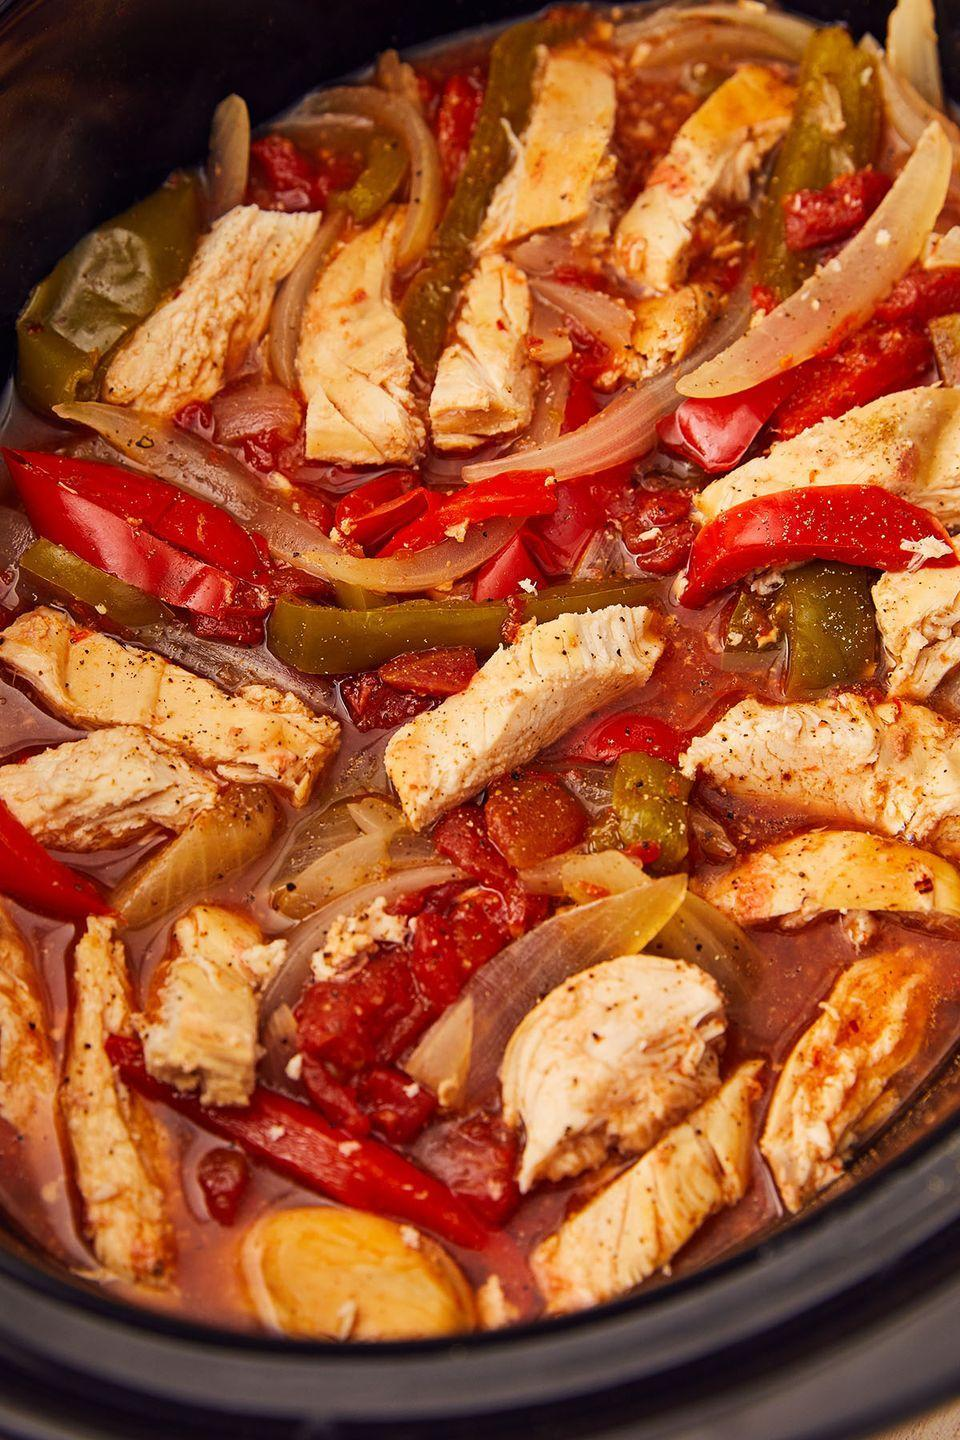 """<p><a href=""""https://www.delish.com/cooking/recipe-ideas/a25647730/keto-tortilla-recipe/"""" rel=""""nofollow noopener"""" target=""""_blank"""" data-ylk=""""slk:Use keto tortillas"""" class=""""link rapid-noclick-resp"""">Use keto tortillas</a> and feel good about loading up on the cheese and guac!</p><p>Get the recipe from <a href=""""https://www.delish.com/cooking/recipe-ideas/a22175263/crockpot-chicken-fajitas-recipe/"""" rel=""""nofollow noopener"""" target=""""_blank"""" data-ylk=""""slk:Delish"""" class=""""link rapid-noclick-resp"""">Delish</a>. </p>"""